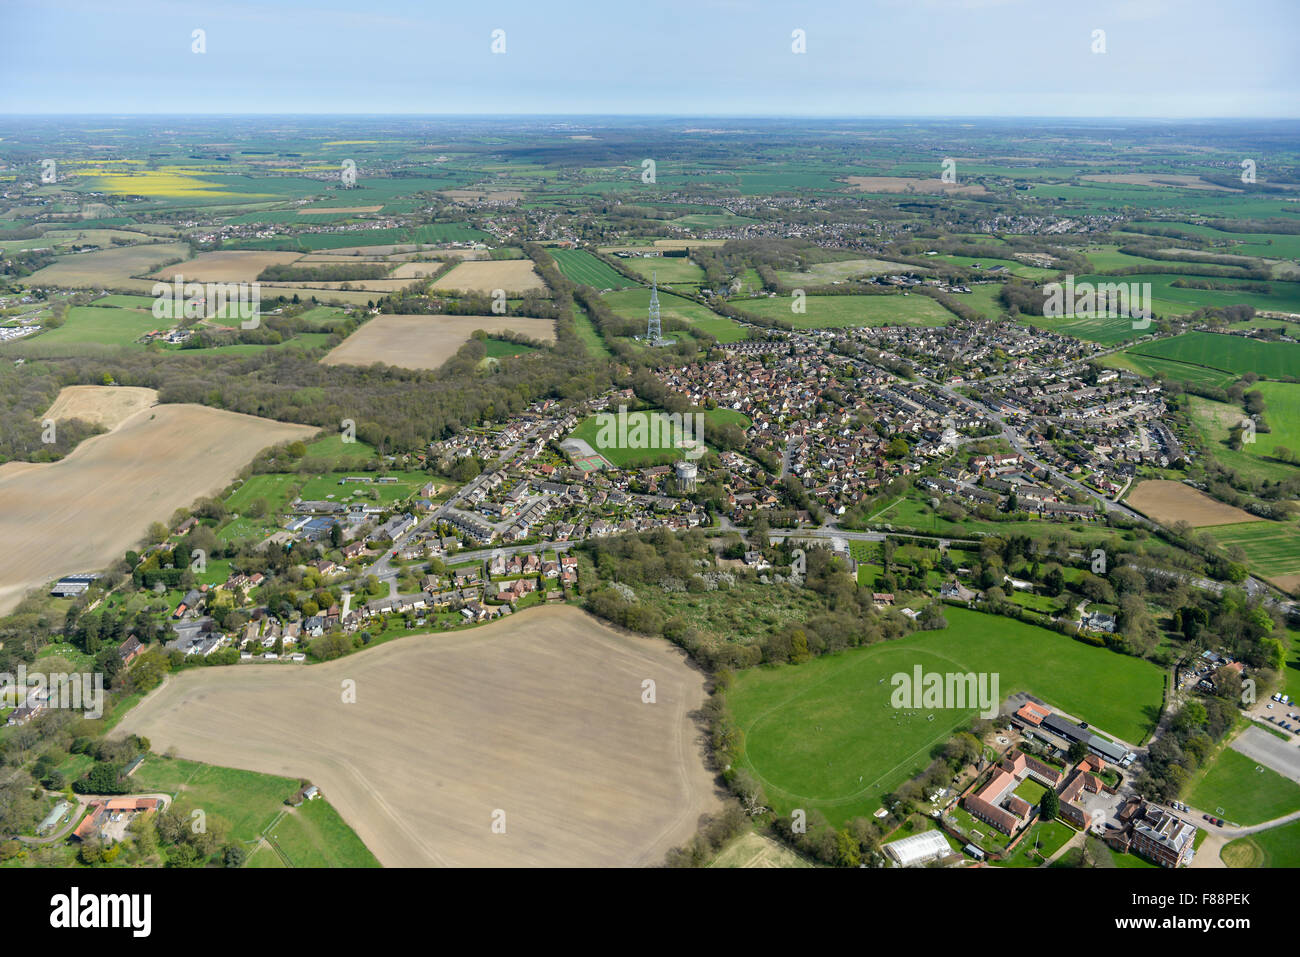 An aerial view of the Essex village of Kelvedon Hatch and surrounding countryside - Stock Image